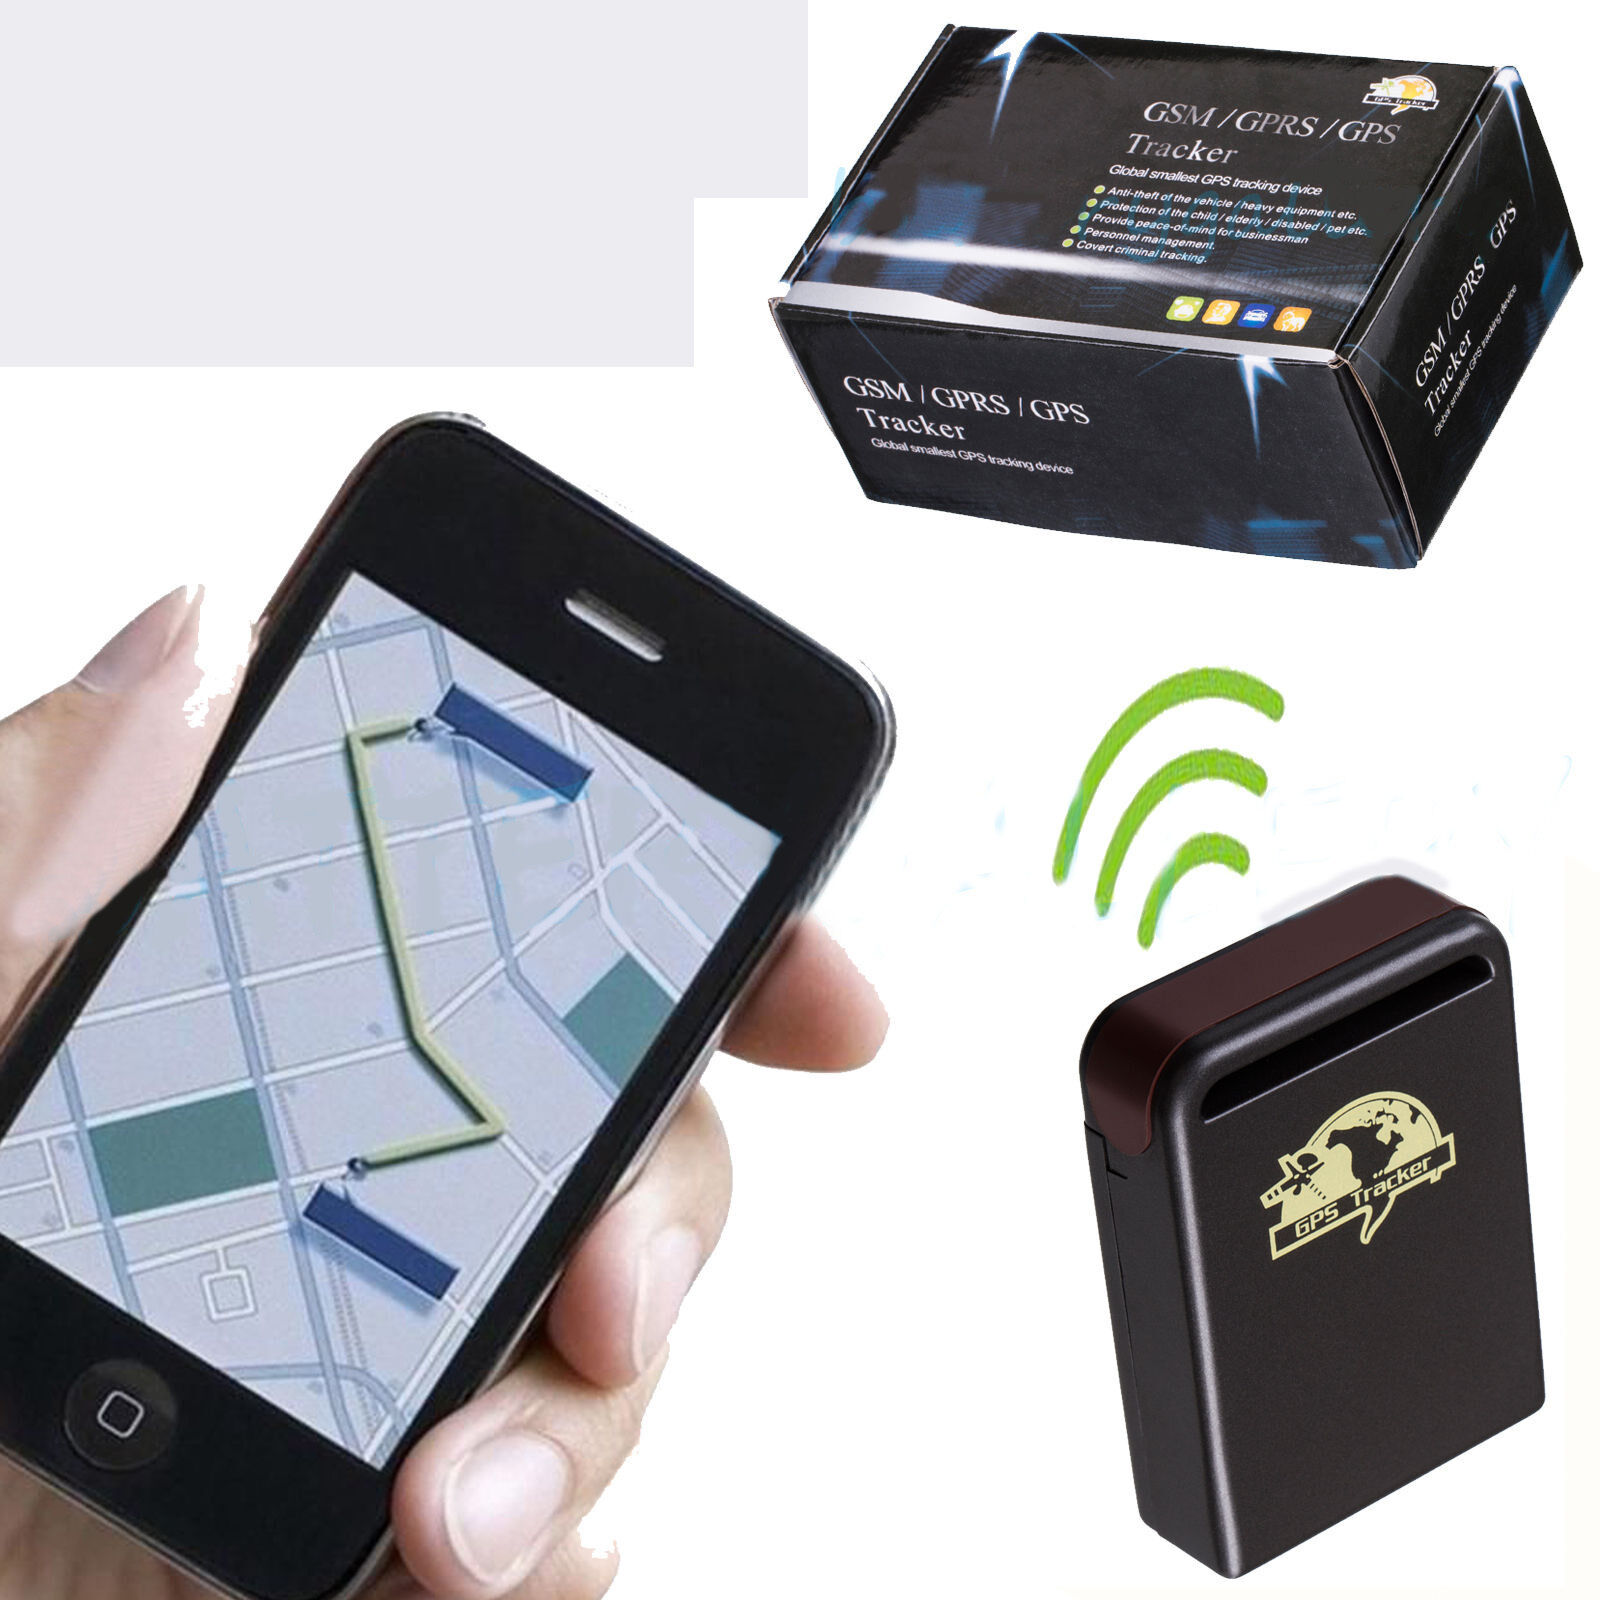 realtime gps tracker gsm gprs system vehicle tracking. Black Bedroom Furniture Sets. Home Design Ideas